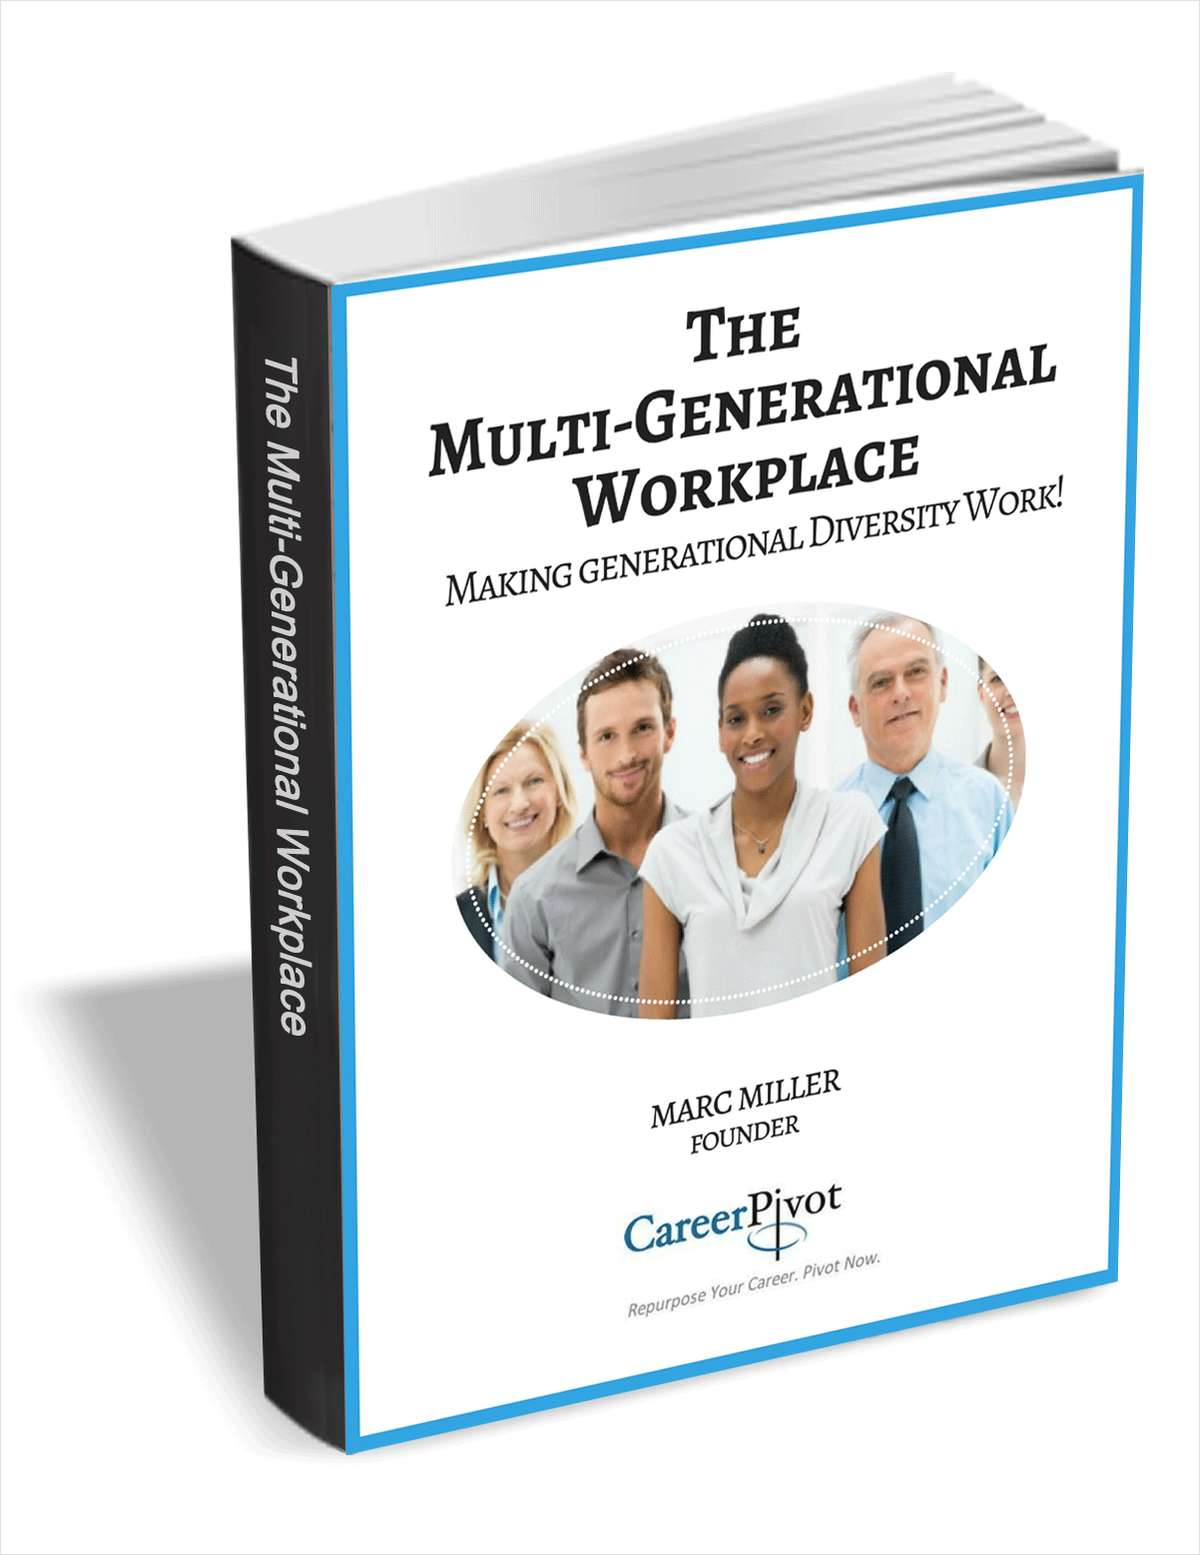 The Multi-Generational Workplace - Making Generational Diversity Work